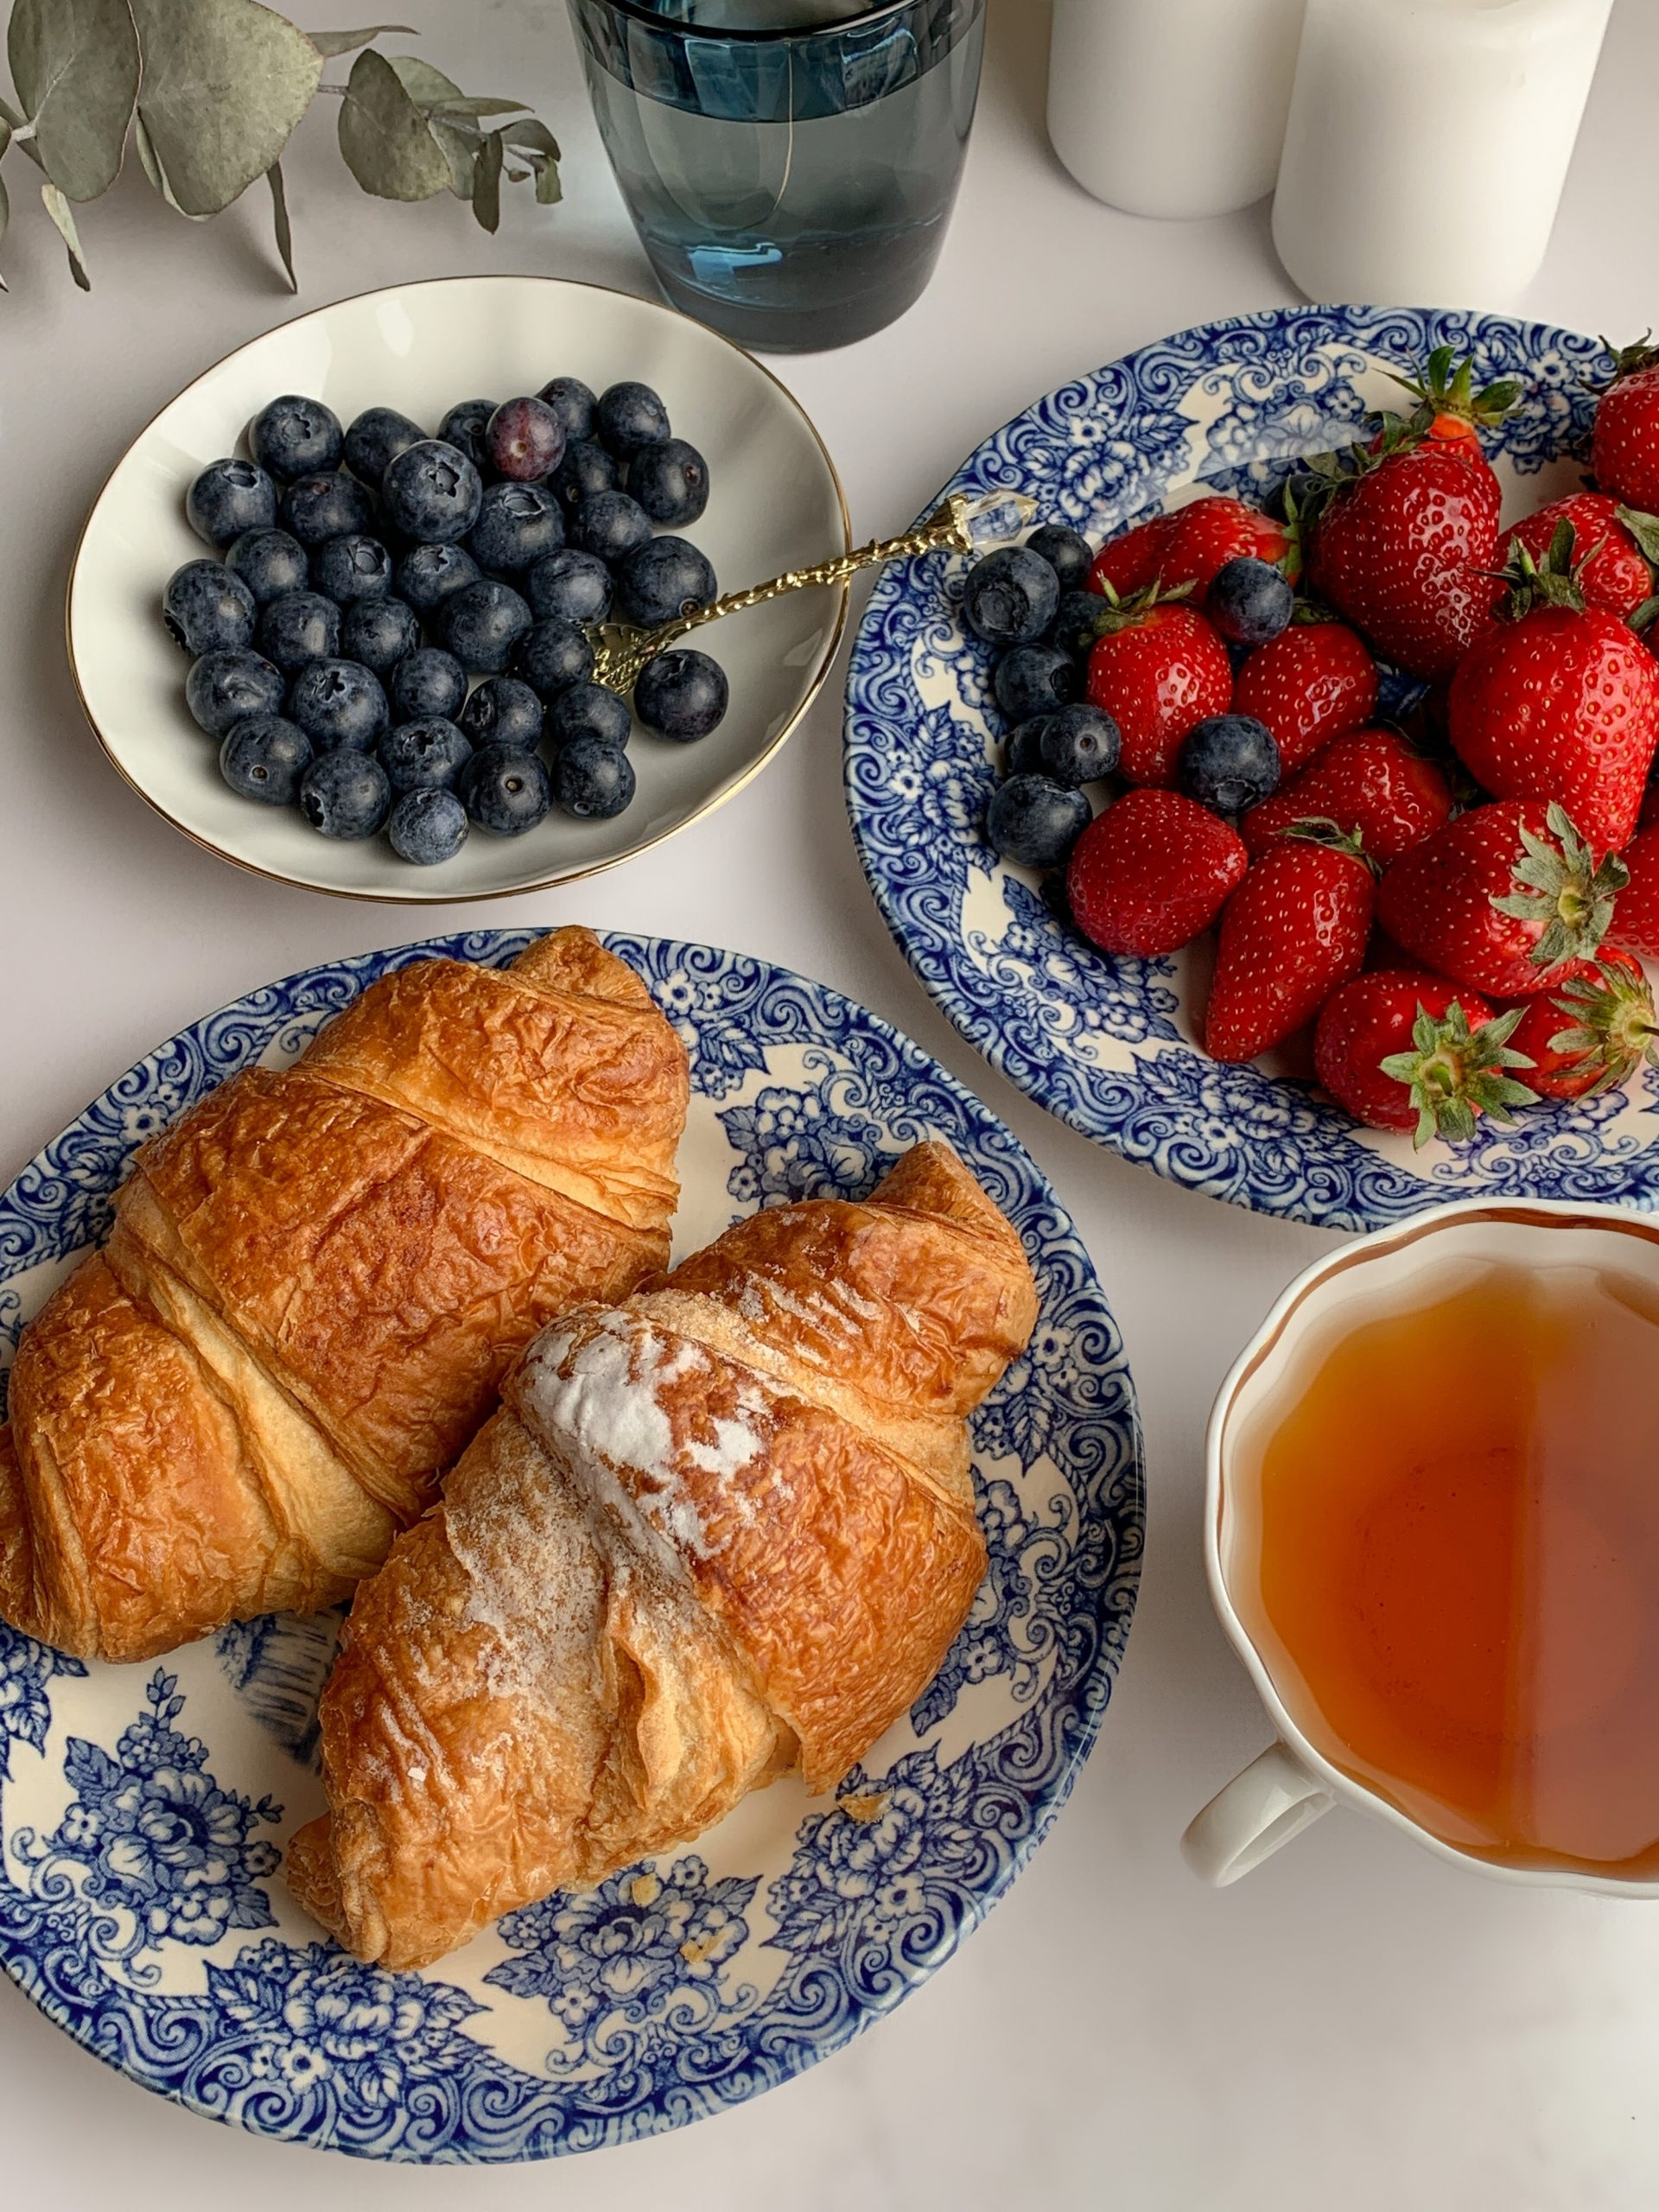 easy-breakfast-ideas-to-try-out-with-all-that-free-time